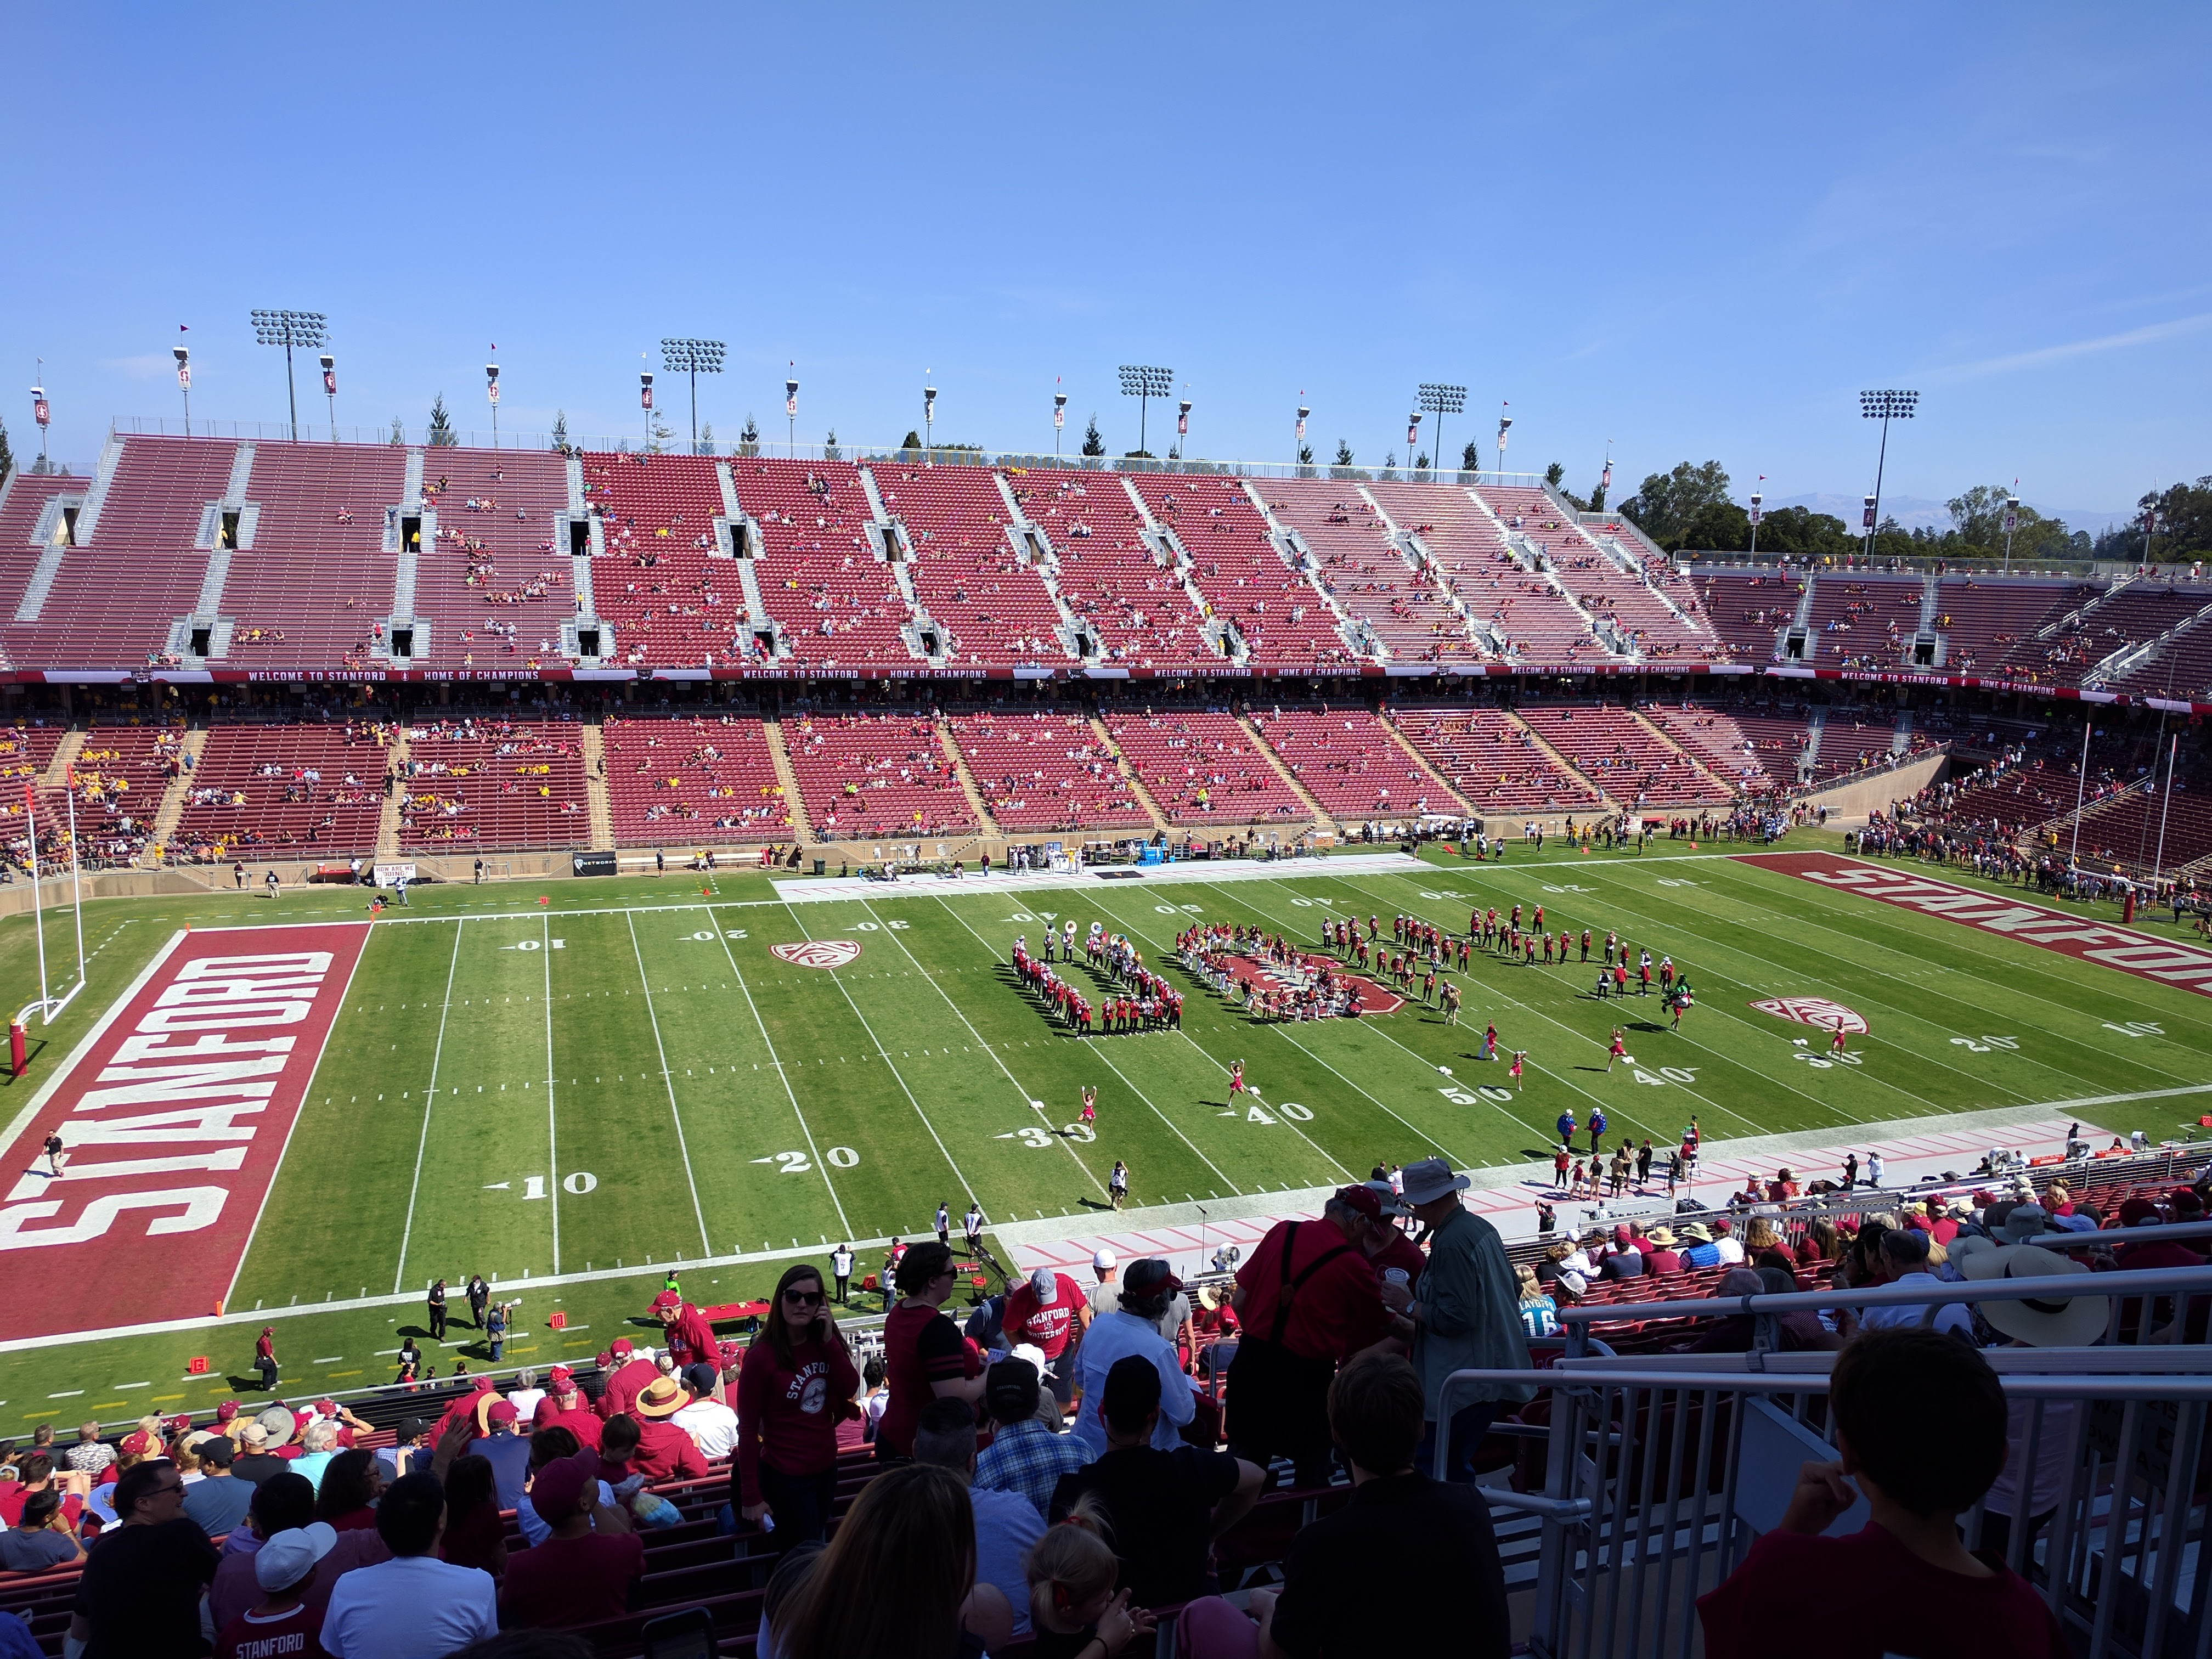 Stanford Cardinal football game